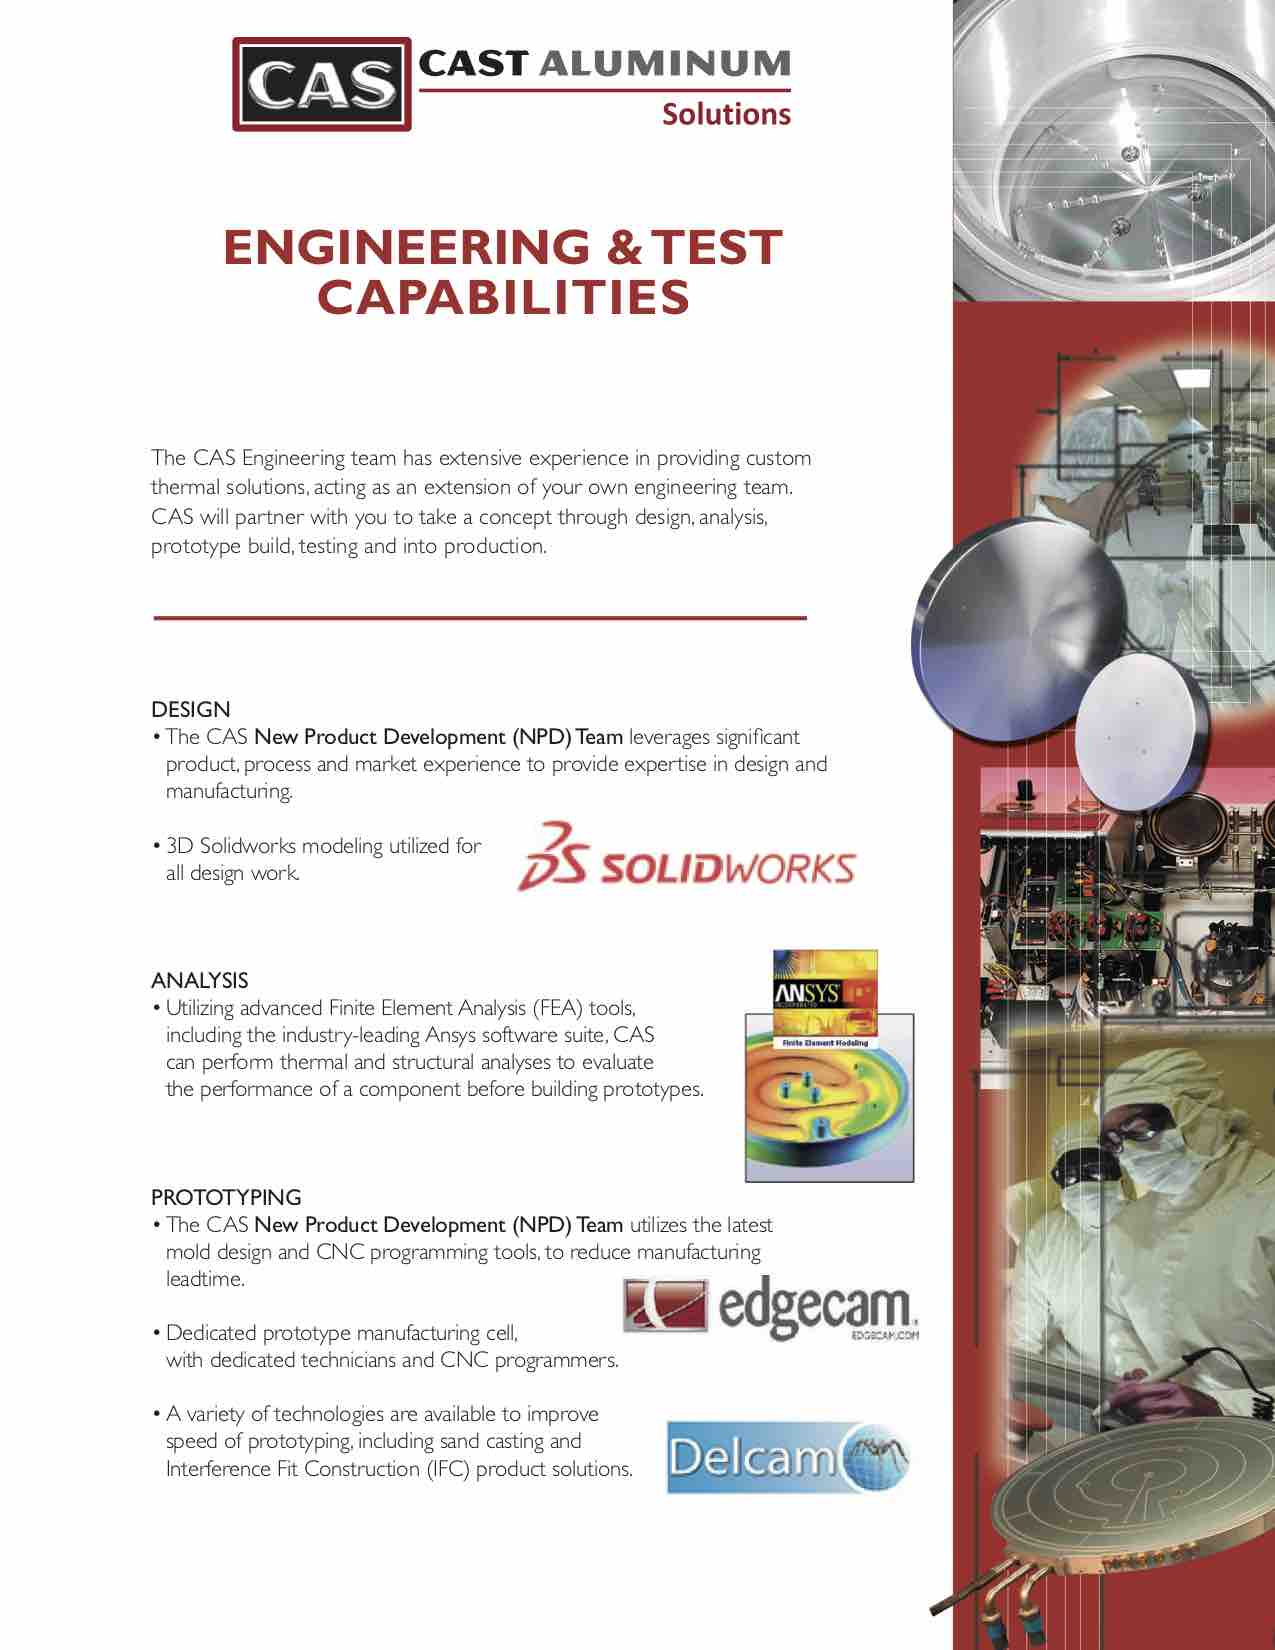 Engineering Capabilities Cast Aluminum Solutions (dragged)